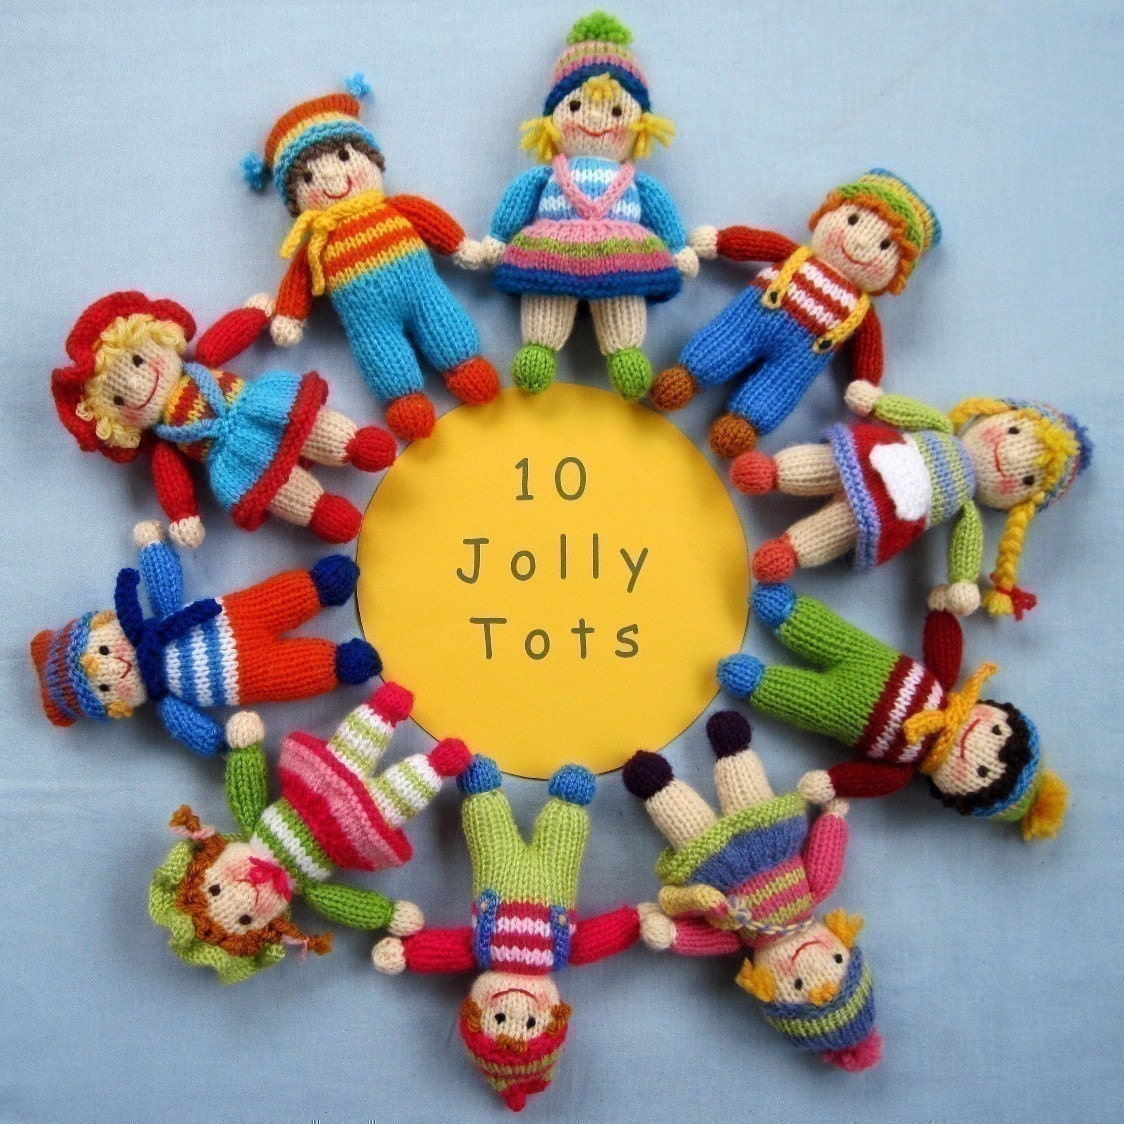 Knitting Patterns For Tiny Dolls : Jolly Tots dolls knitting pattern INSTANT DOWNLOAD